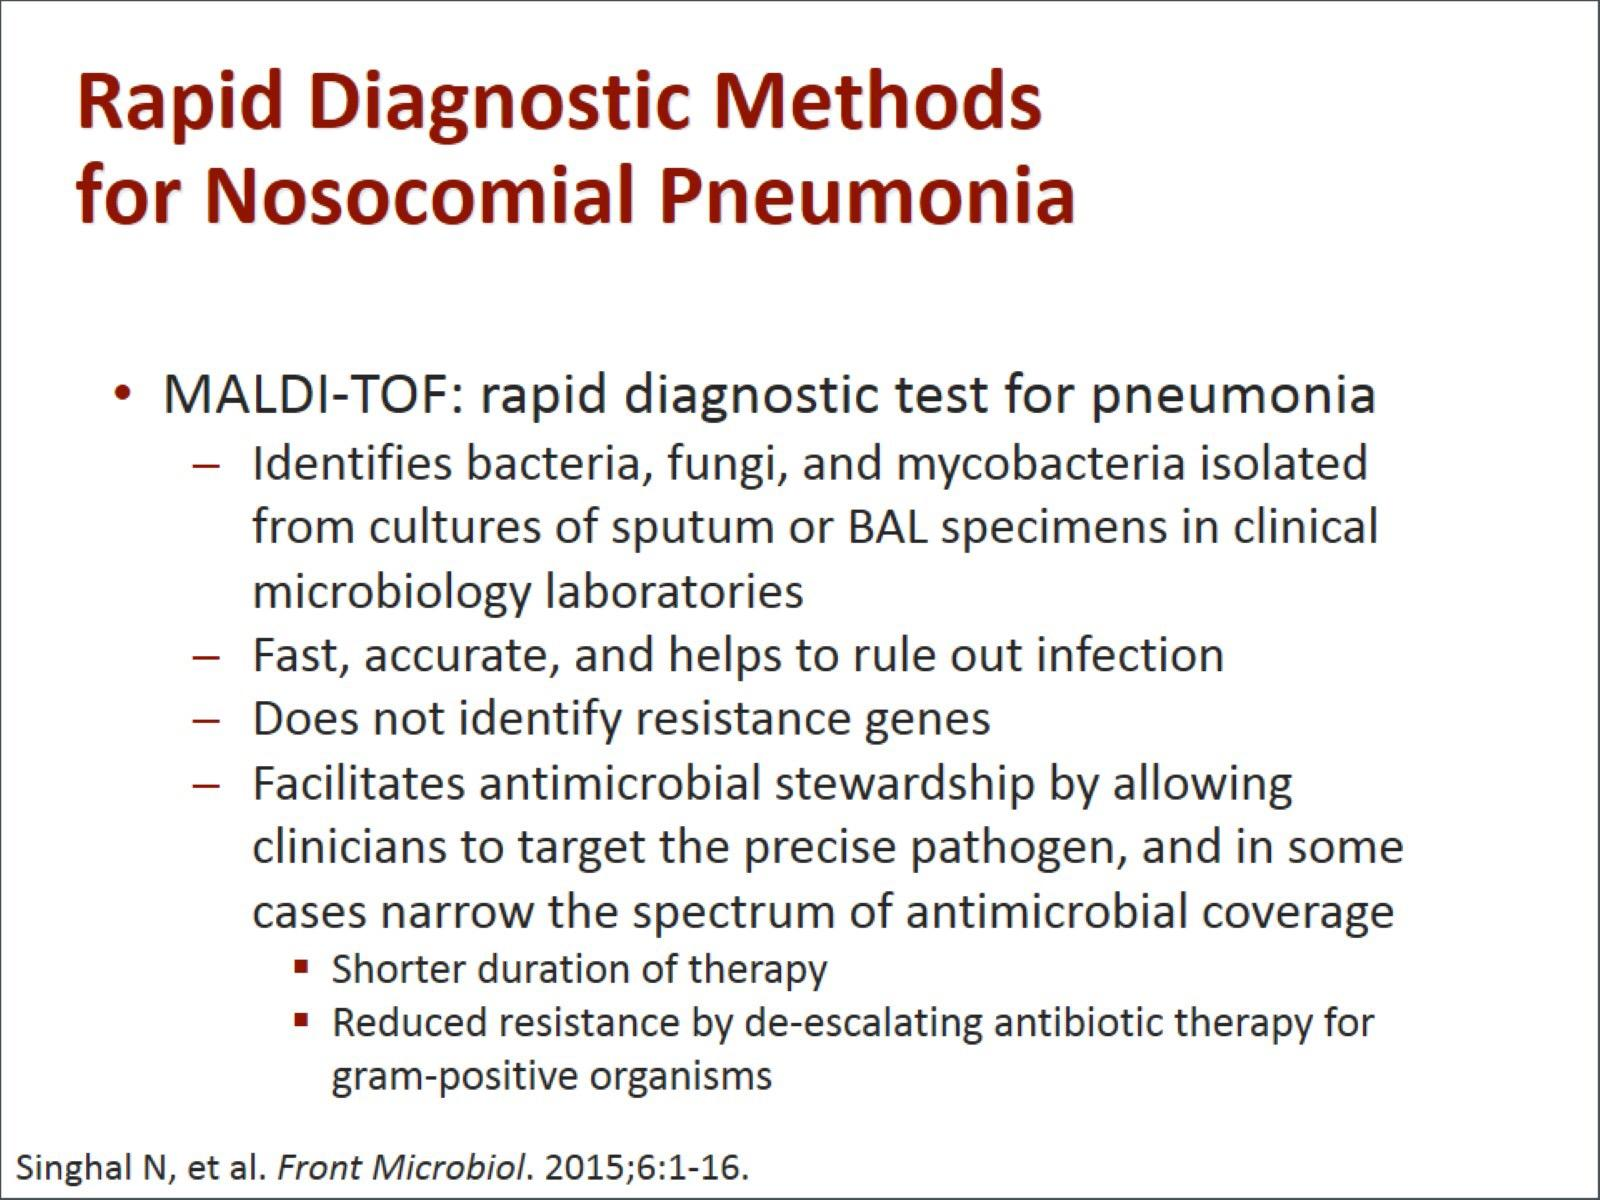 Machine generated alternative text: Rapid Diagnostic Methods for Nosocomial Pneumonia MALDI-TOF: rapid diagnostic test for pneumonia — Identifies bacteria, fungi, and mycobacteria isolated from cultures of sputum or BAL specimens in clinical microbiology laboratories Fast, accurate, and helps to rule out infection Does not identify resistance genes Facilitates antimicrobial stewardship by allowing clinicians to target the precise pathogen, and in some cases narrow the spectrum of antimicrobial coverage • Shorter duration of therapy • Reduced resistance by de-escalating antibiotic therapy for gram-positive organisms Singhal N, et al. Front Microbiol. 2015;6:1-16.